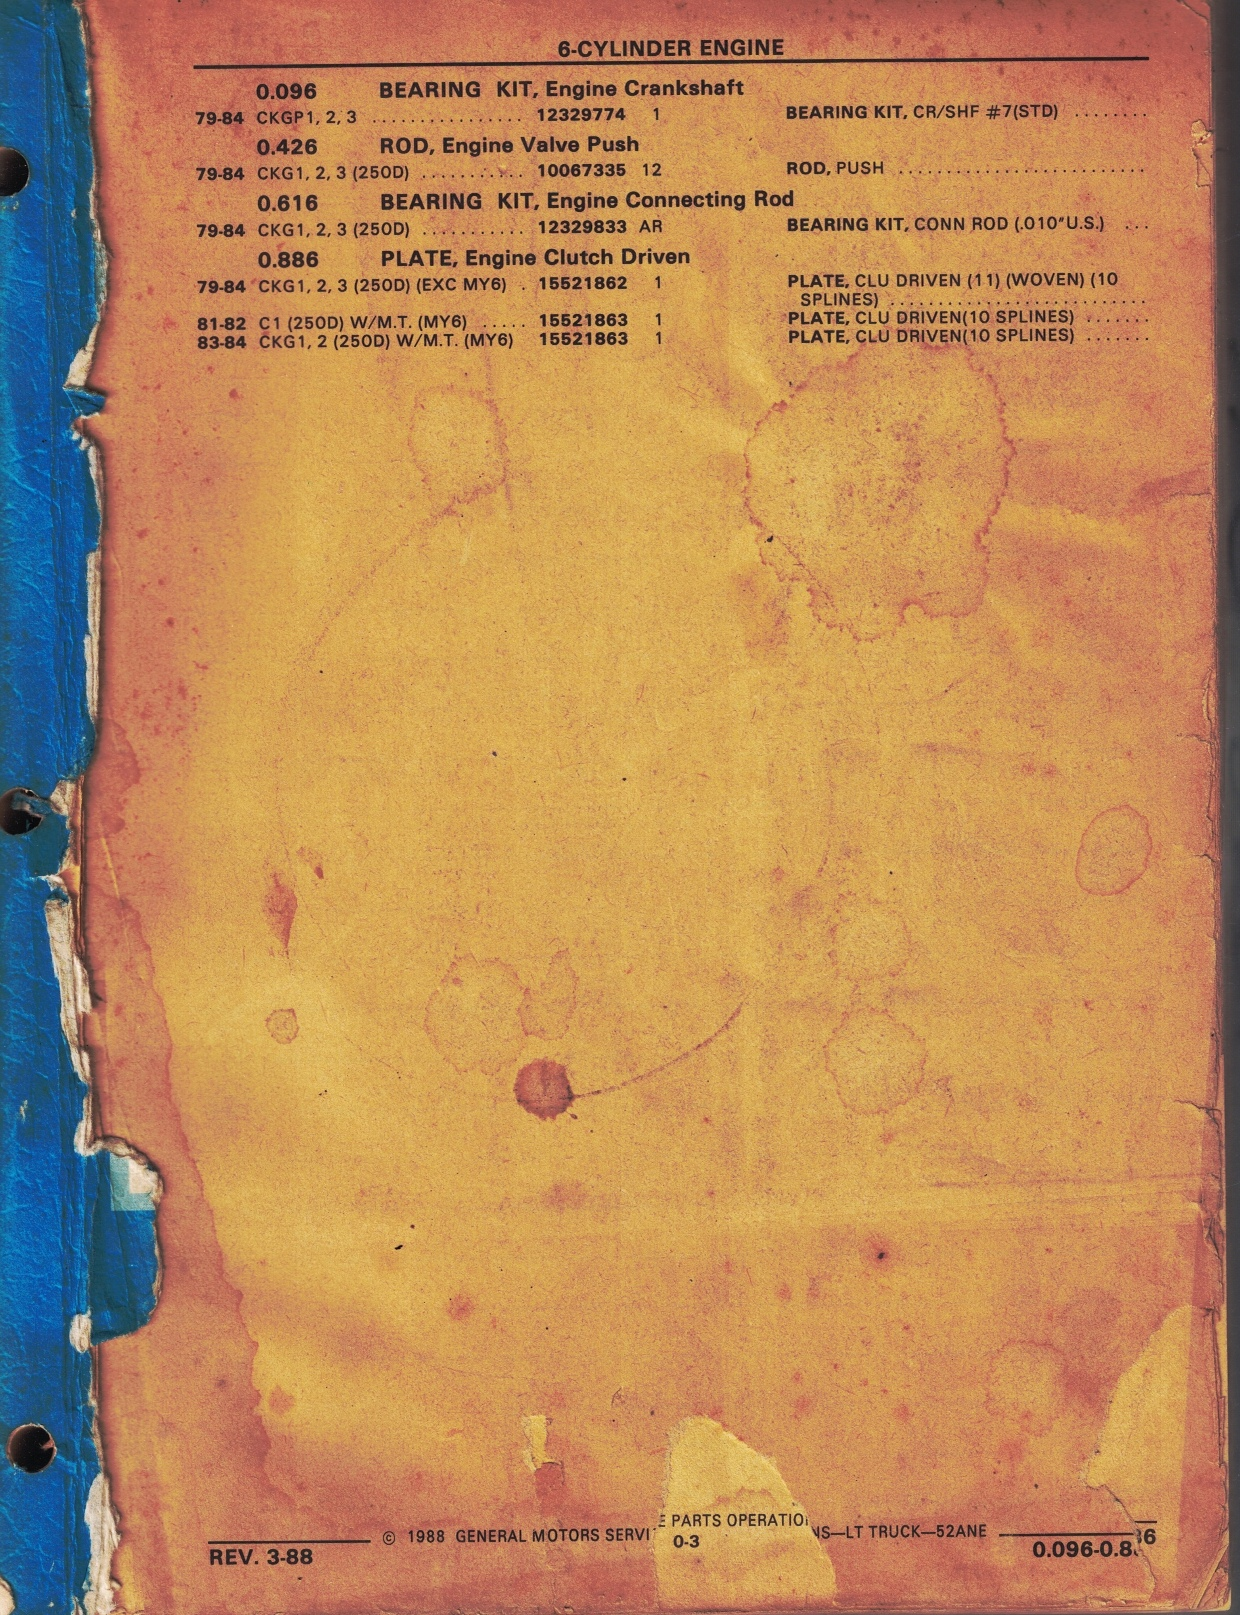 Image for [1979 - 1984] Chevrolet, GMC C, K, G, P Light Truck Parts Catalog [Includes Sections 0 - 9, 16, 17]